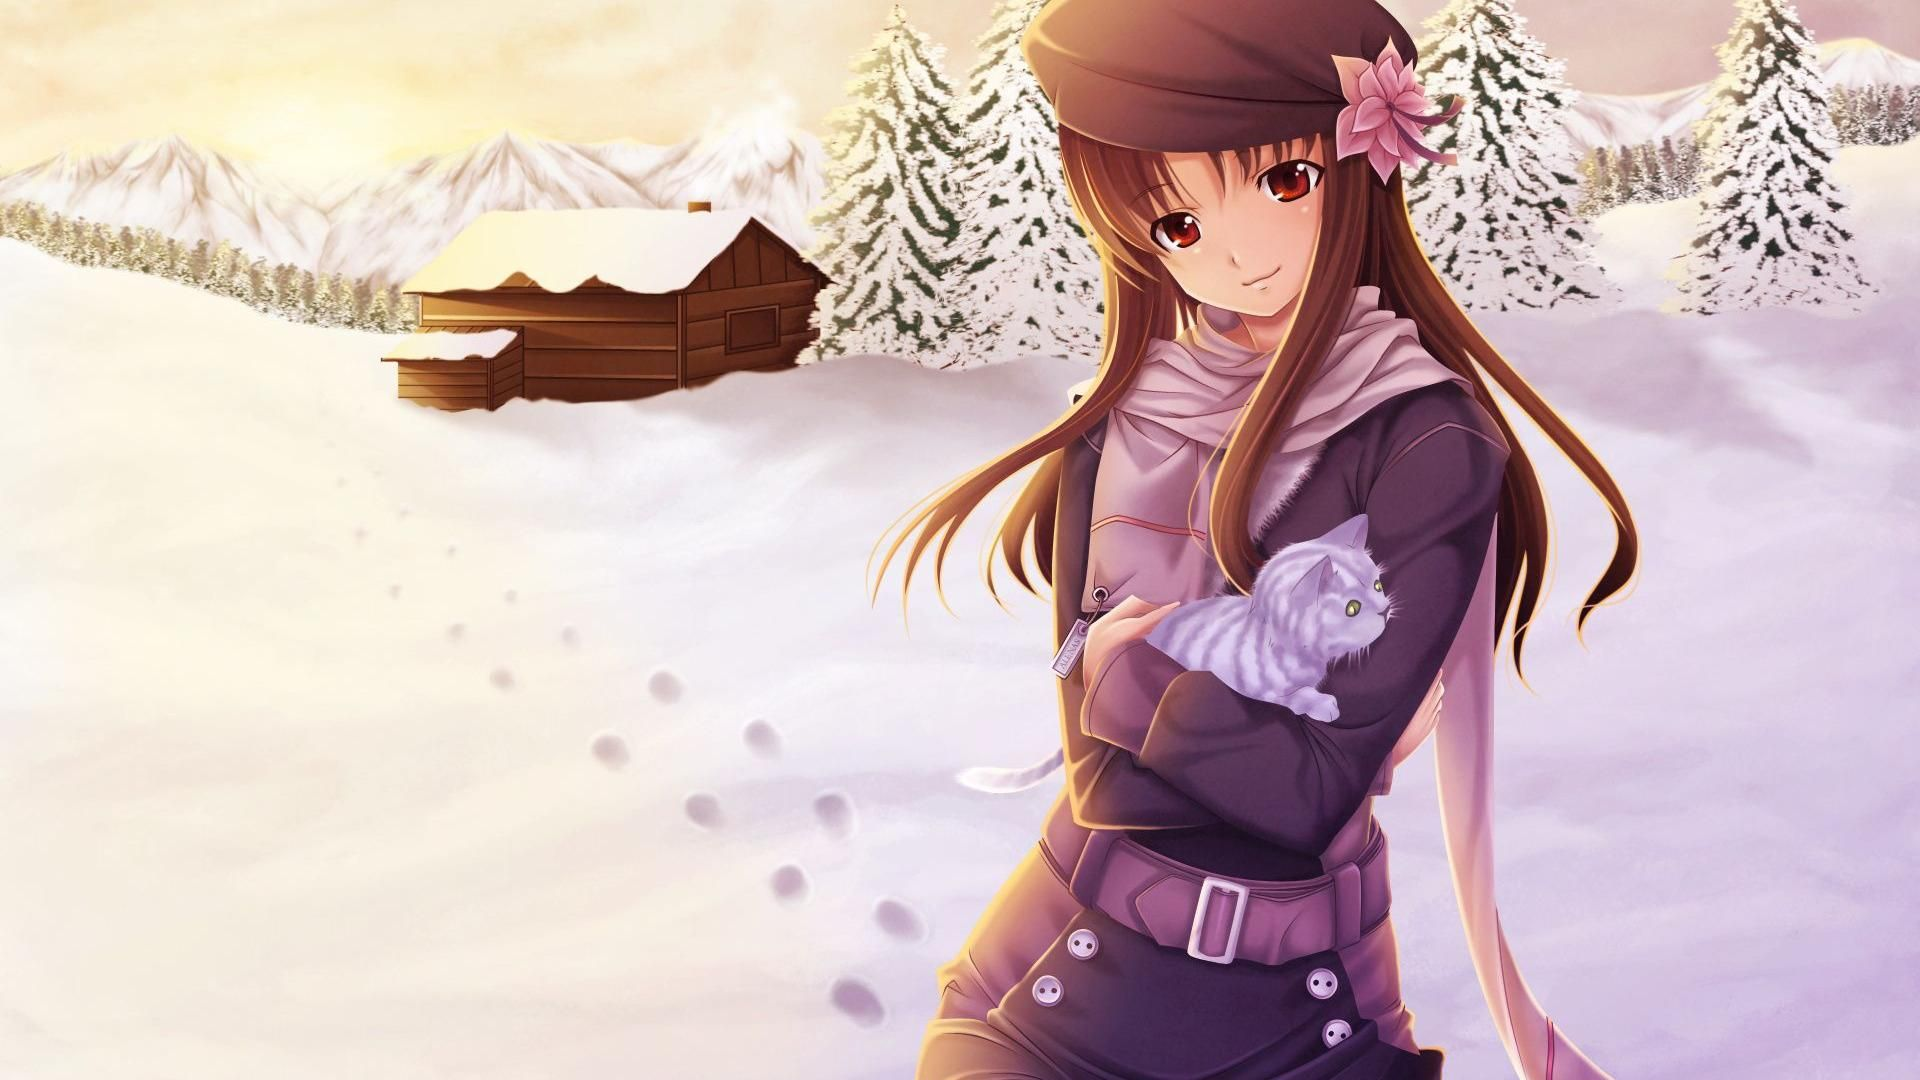 Cute Anime Girl HD Wallpapers Find best latest Cute